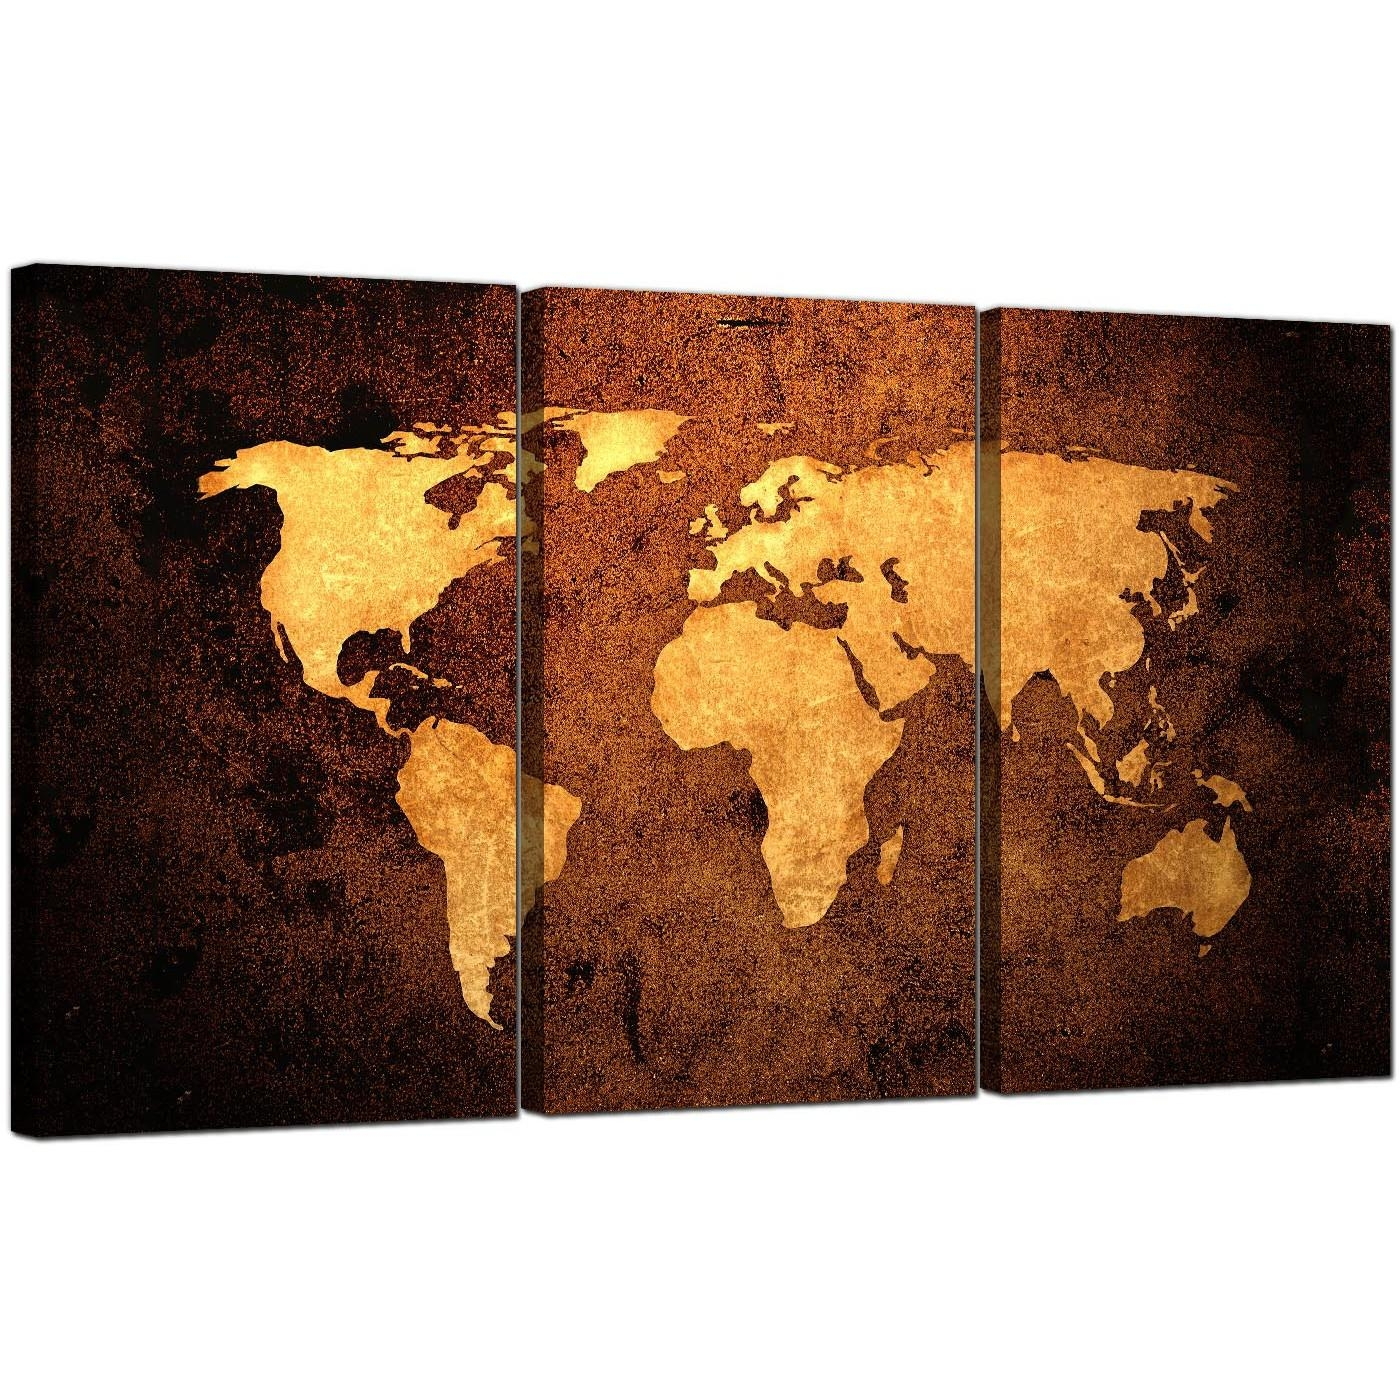 Vintage World Map Canvas Wall Art Set Of 3 For Your Bedroom for Three Panel Wall Art